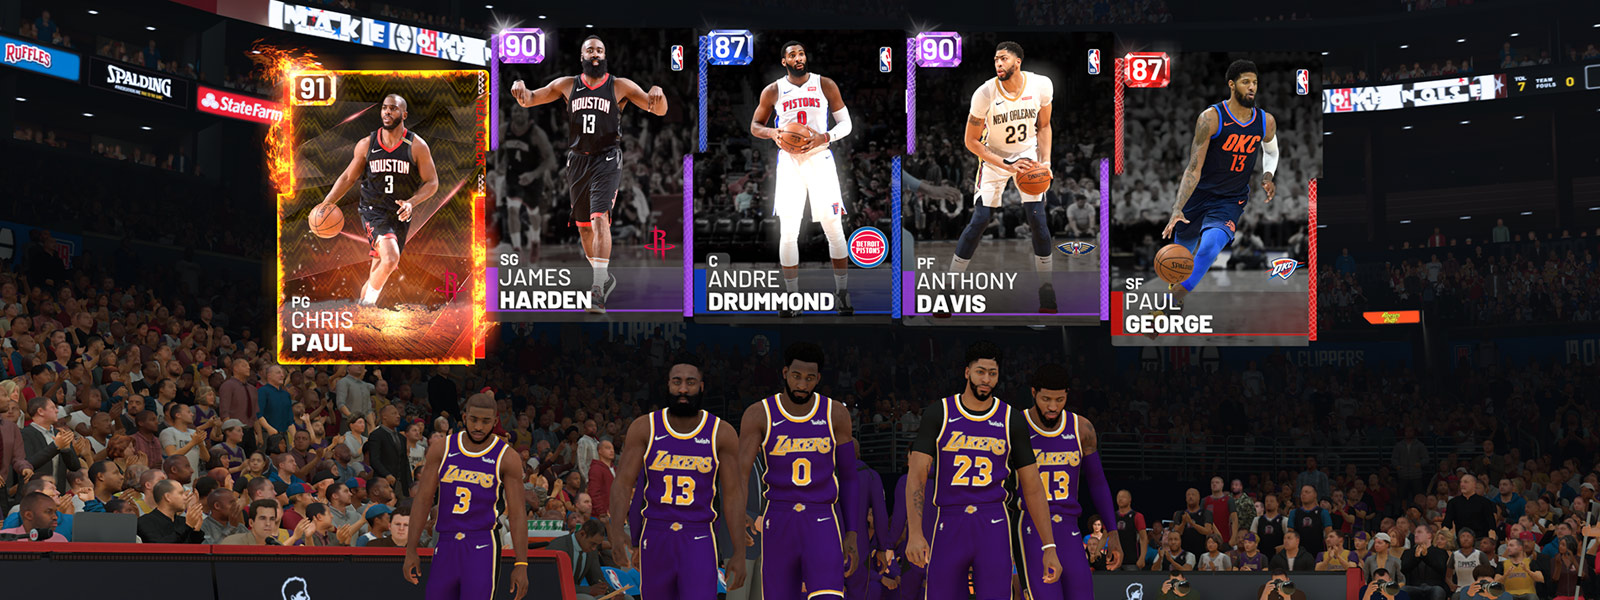 Front view of Lakers team consisting of Chris Paul, James Harden, Andrew Drummond, Anthony Davis and Paul George